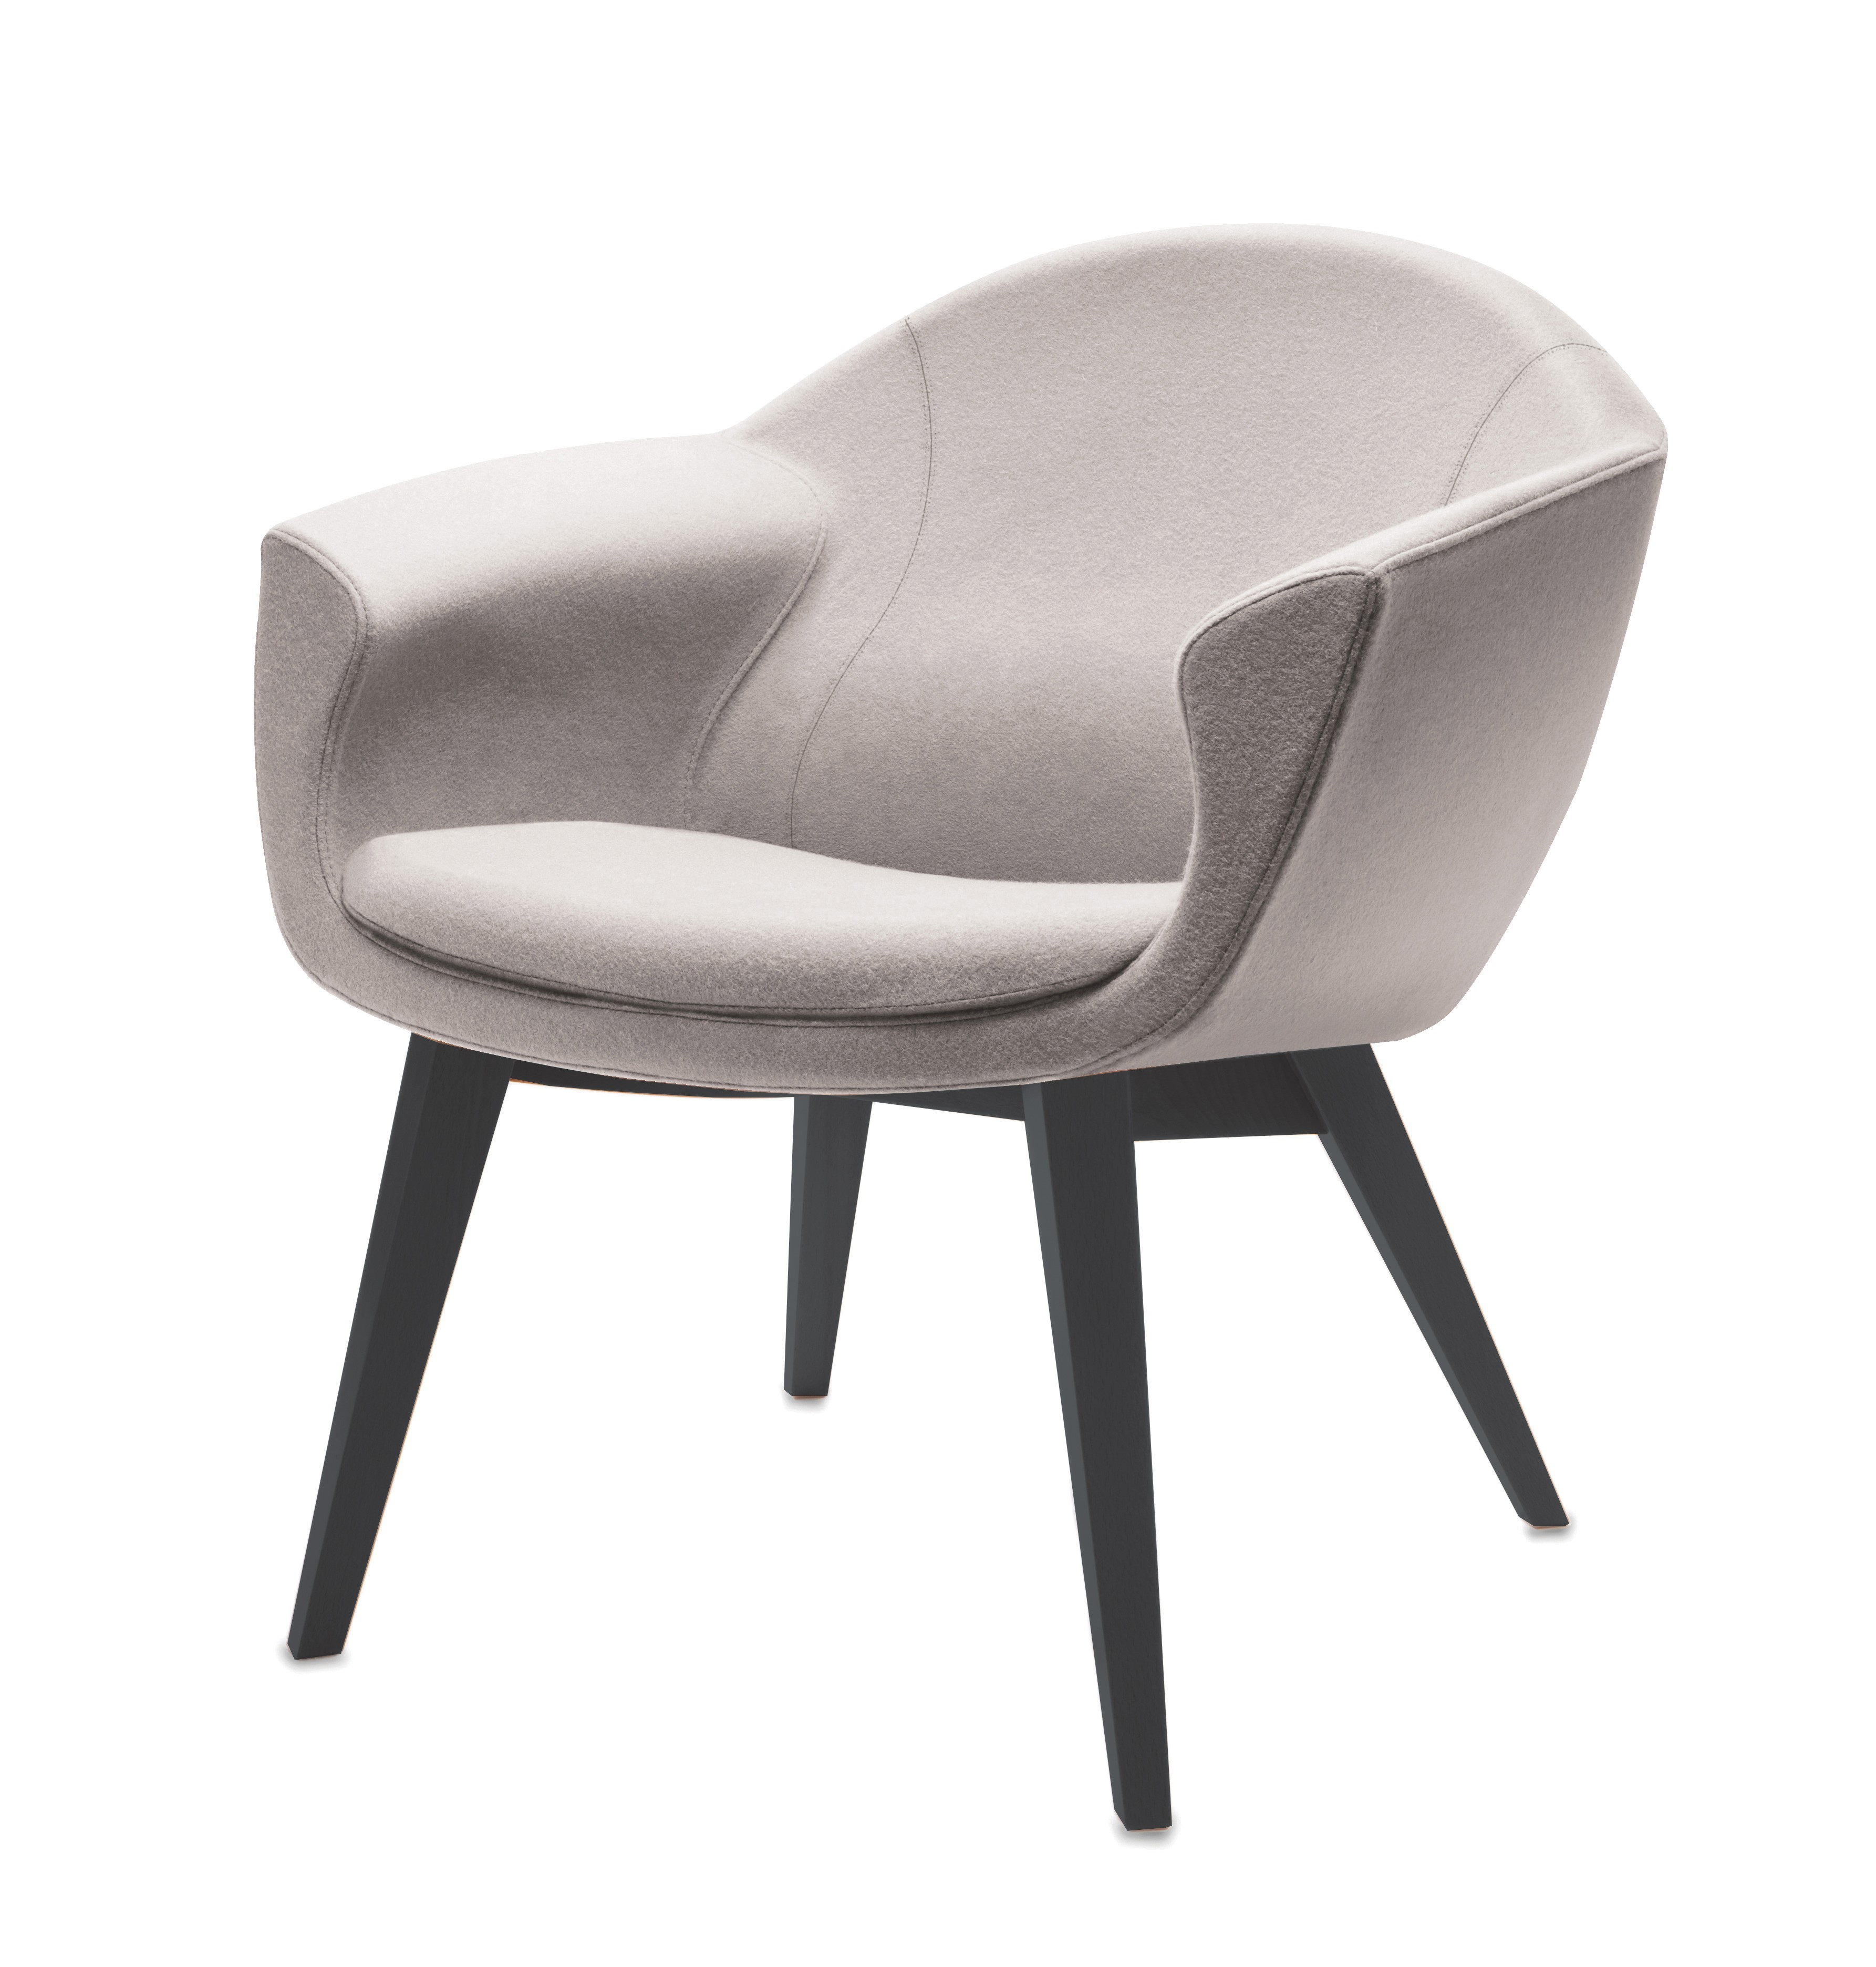 Mortimer Soft Seating - SMO1I